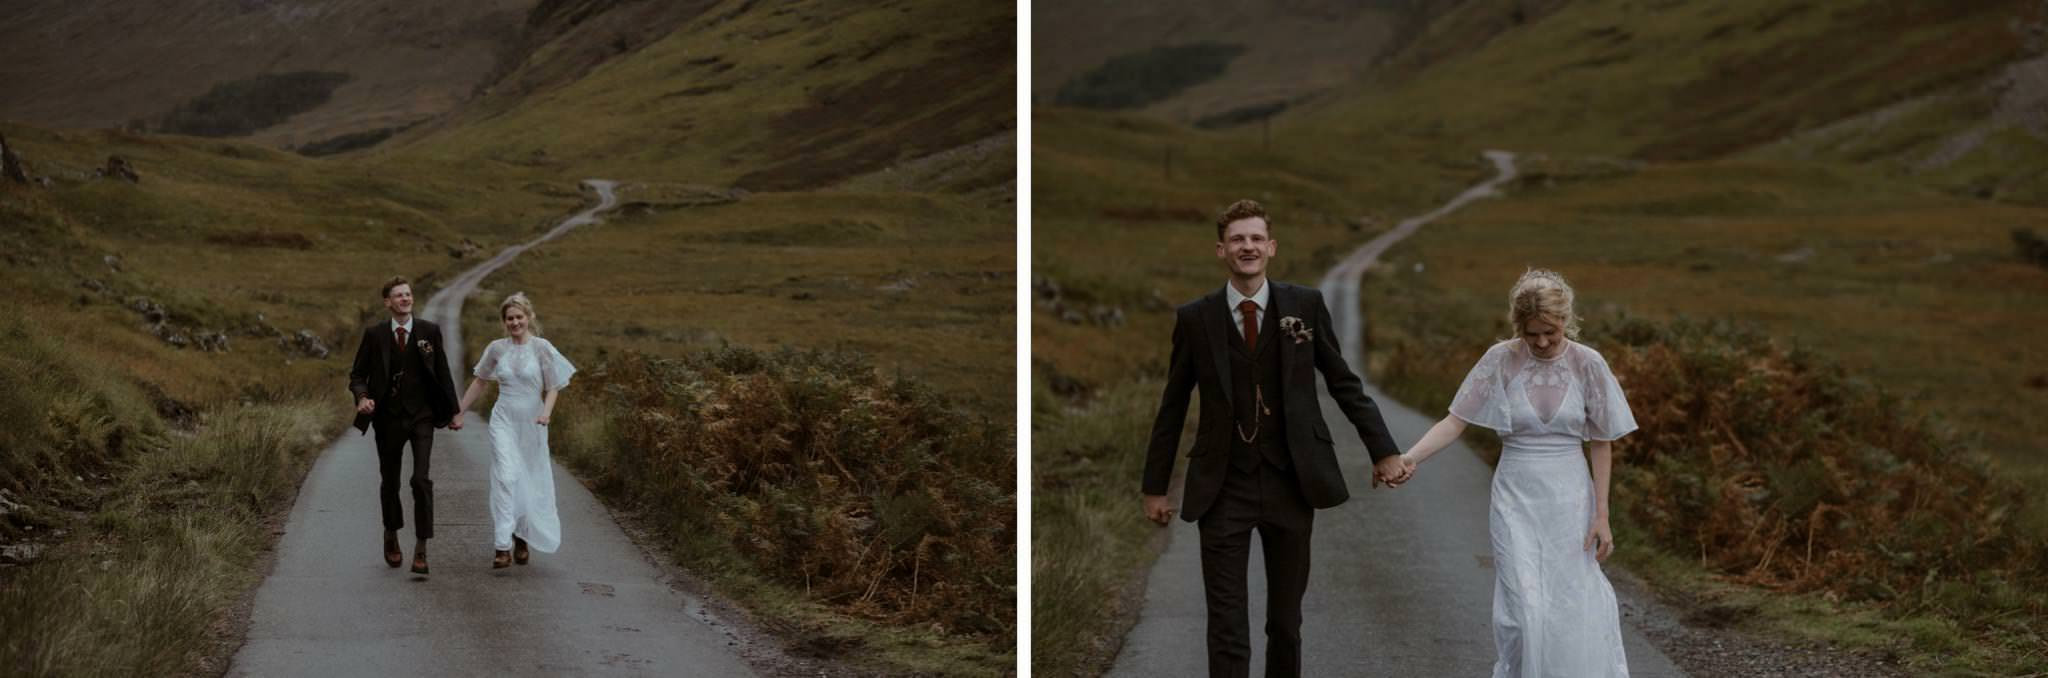 Bride and groom walk down road in Glen Etive after their elopement wedding for two in Scotland